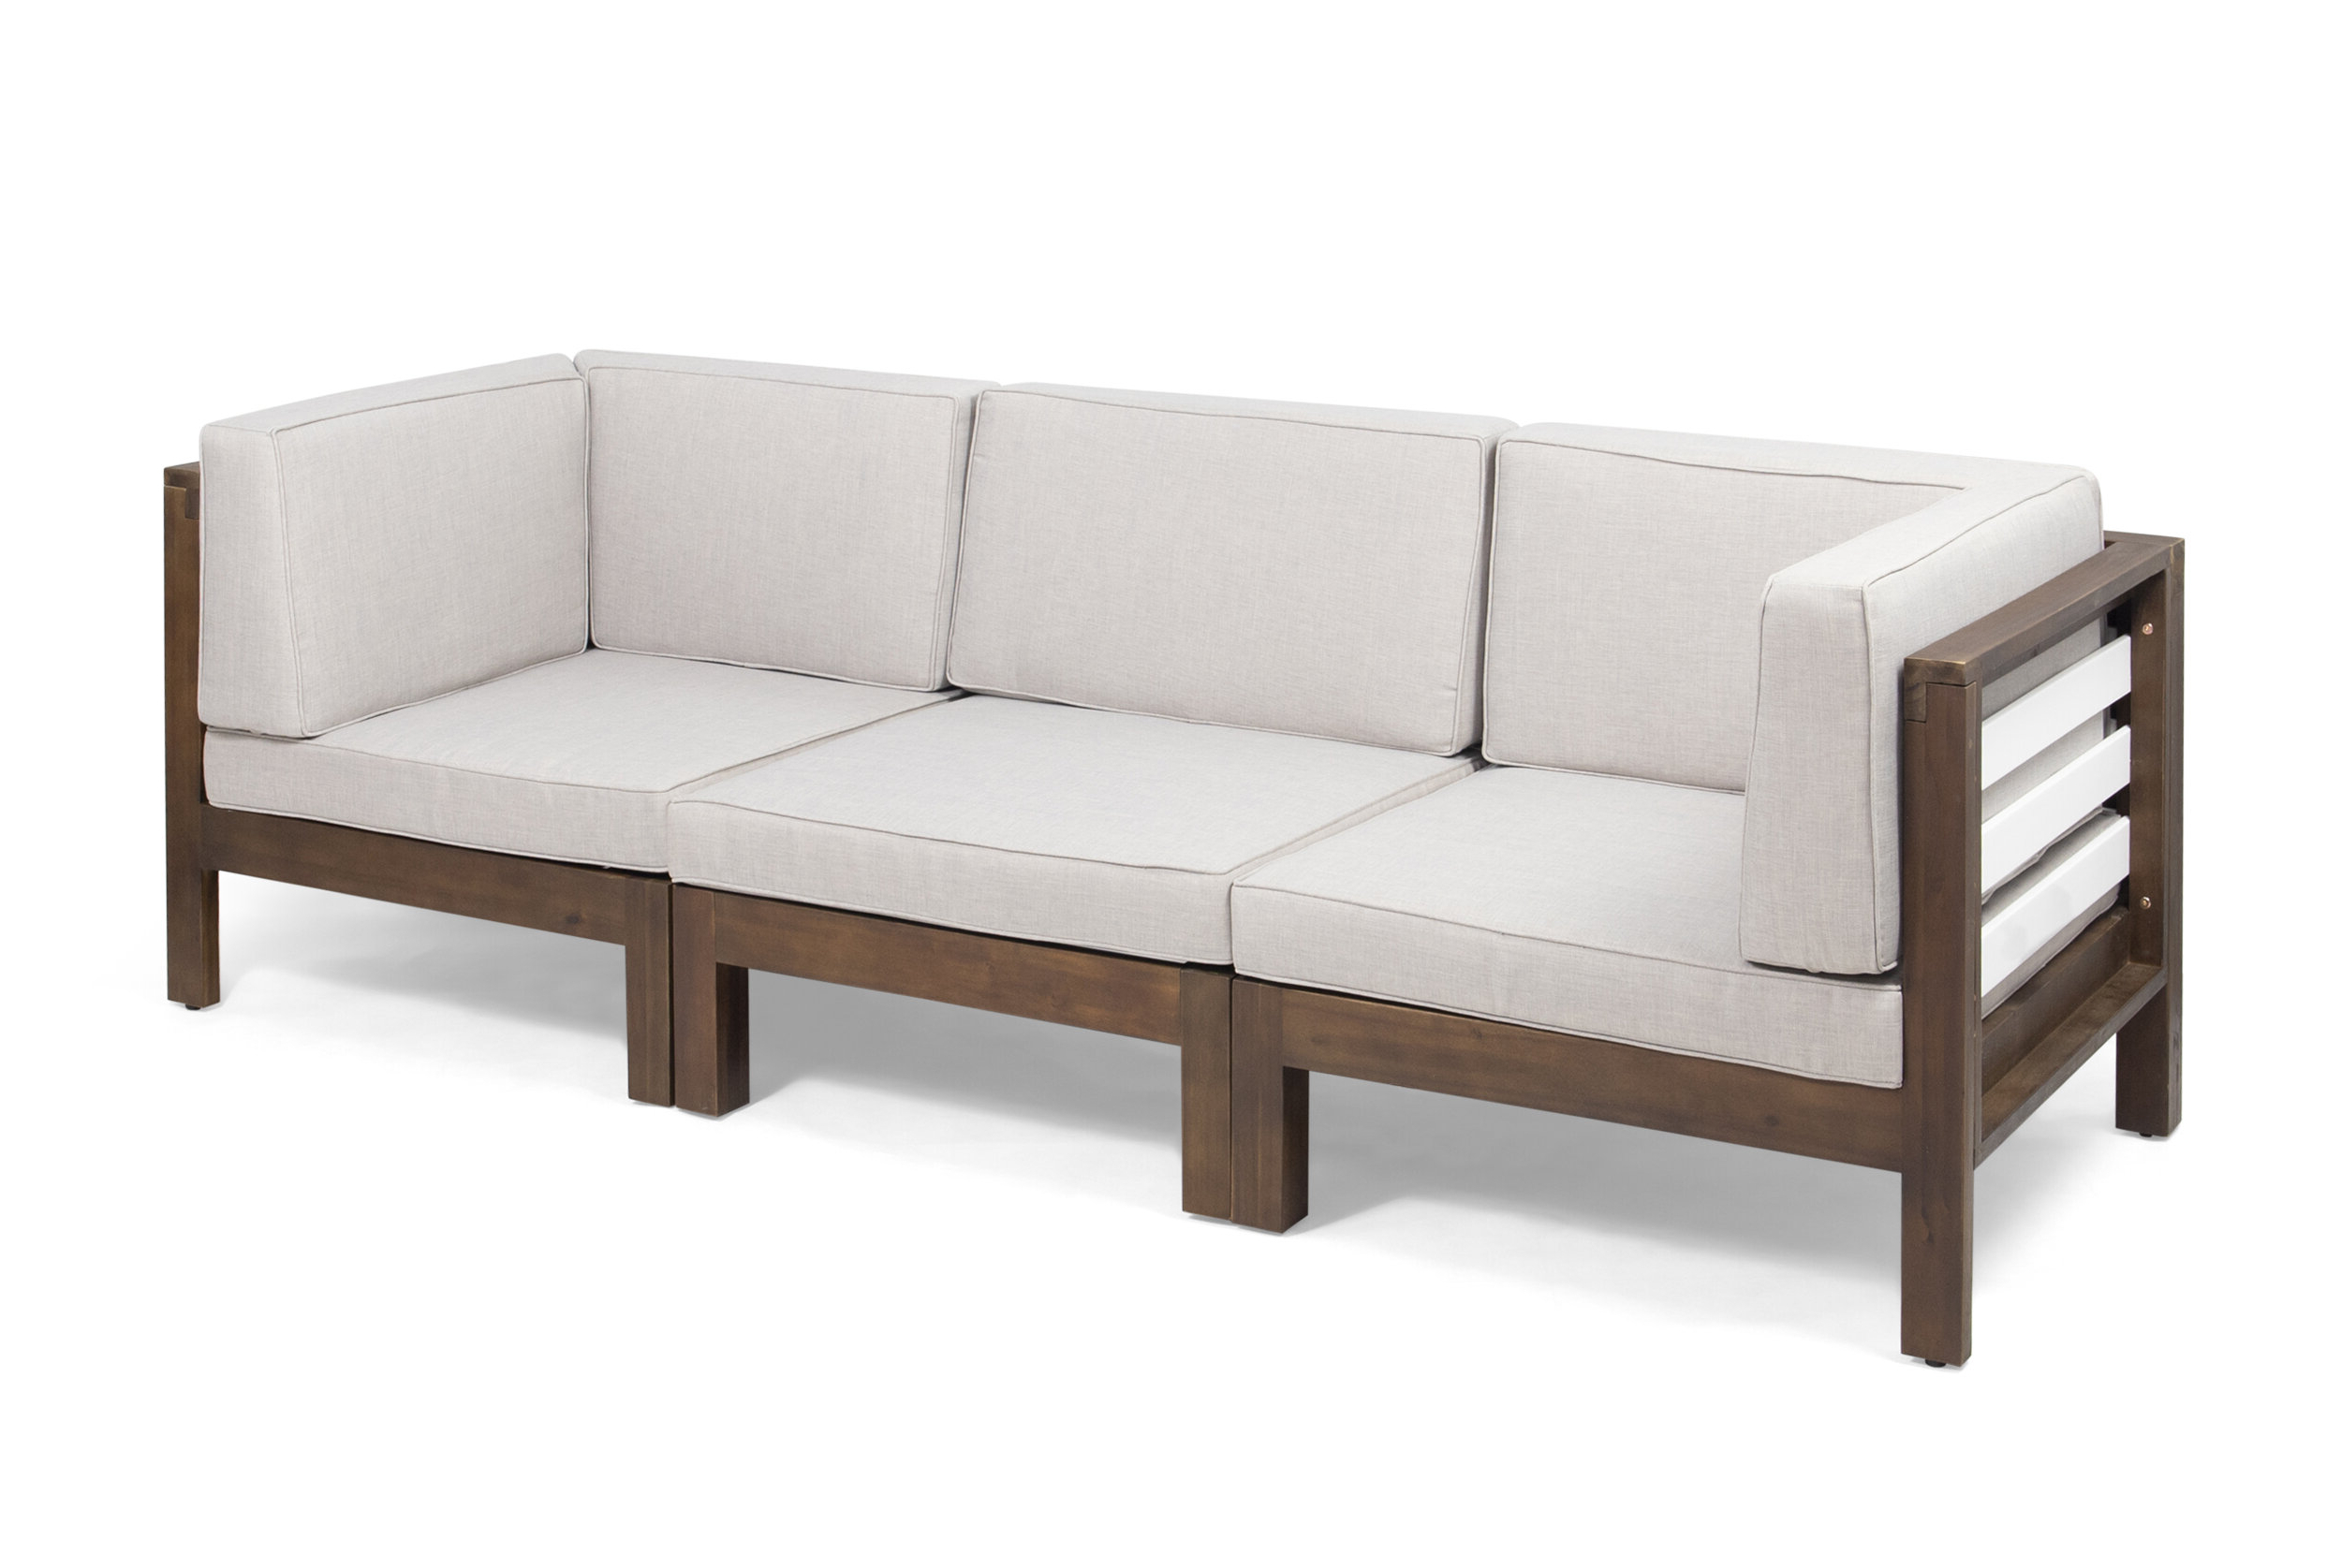 Nolen Patio Sectionals With Cushions Inside Trendy Parnell Outdoor Modular Patio Sofa With Cushions (View 9 of 20)